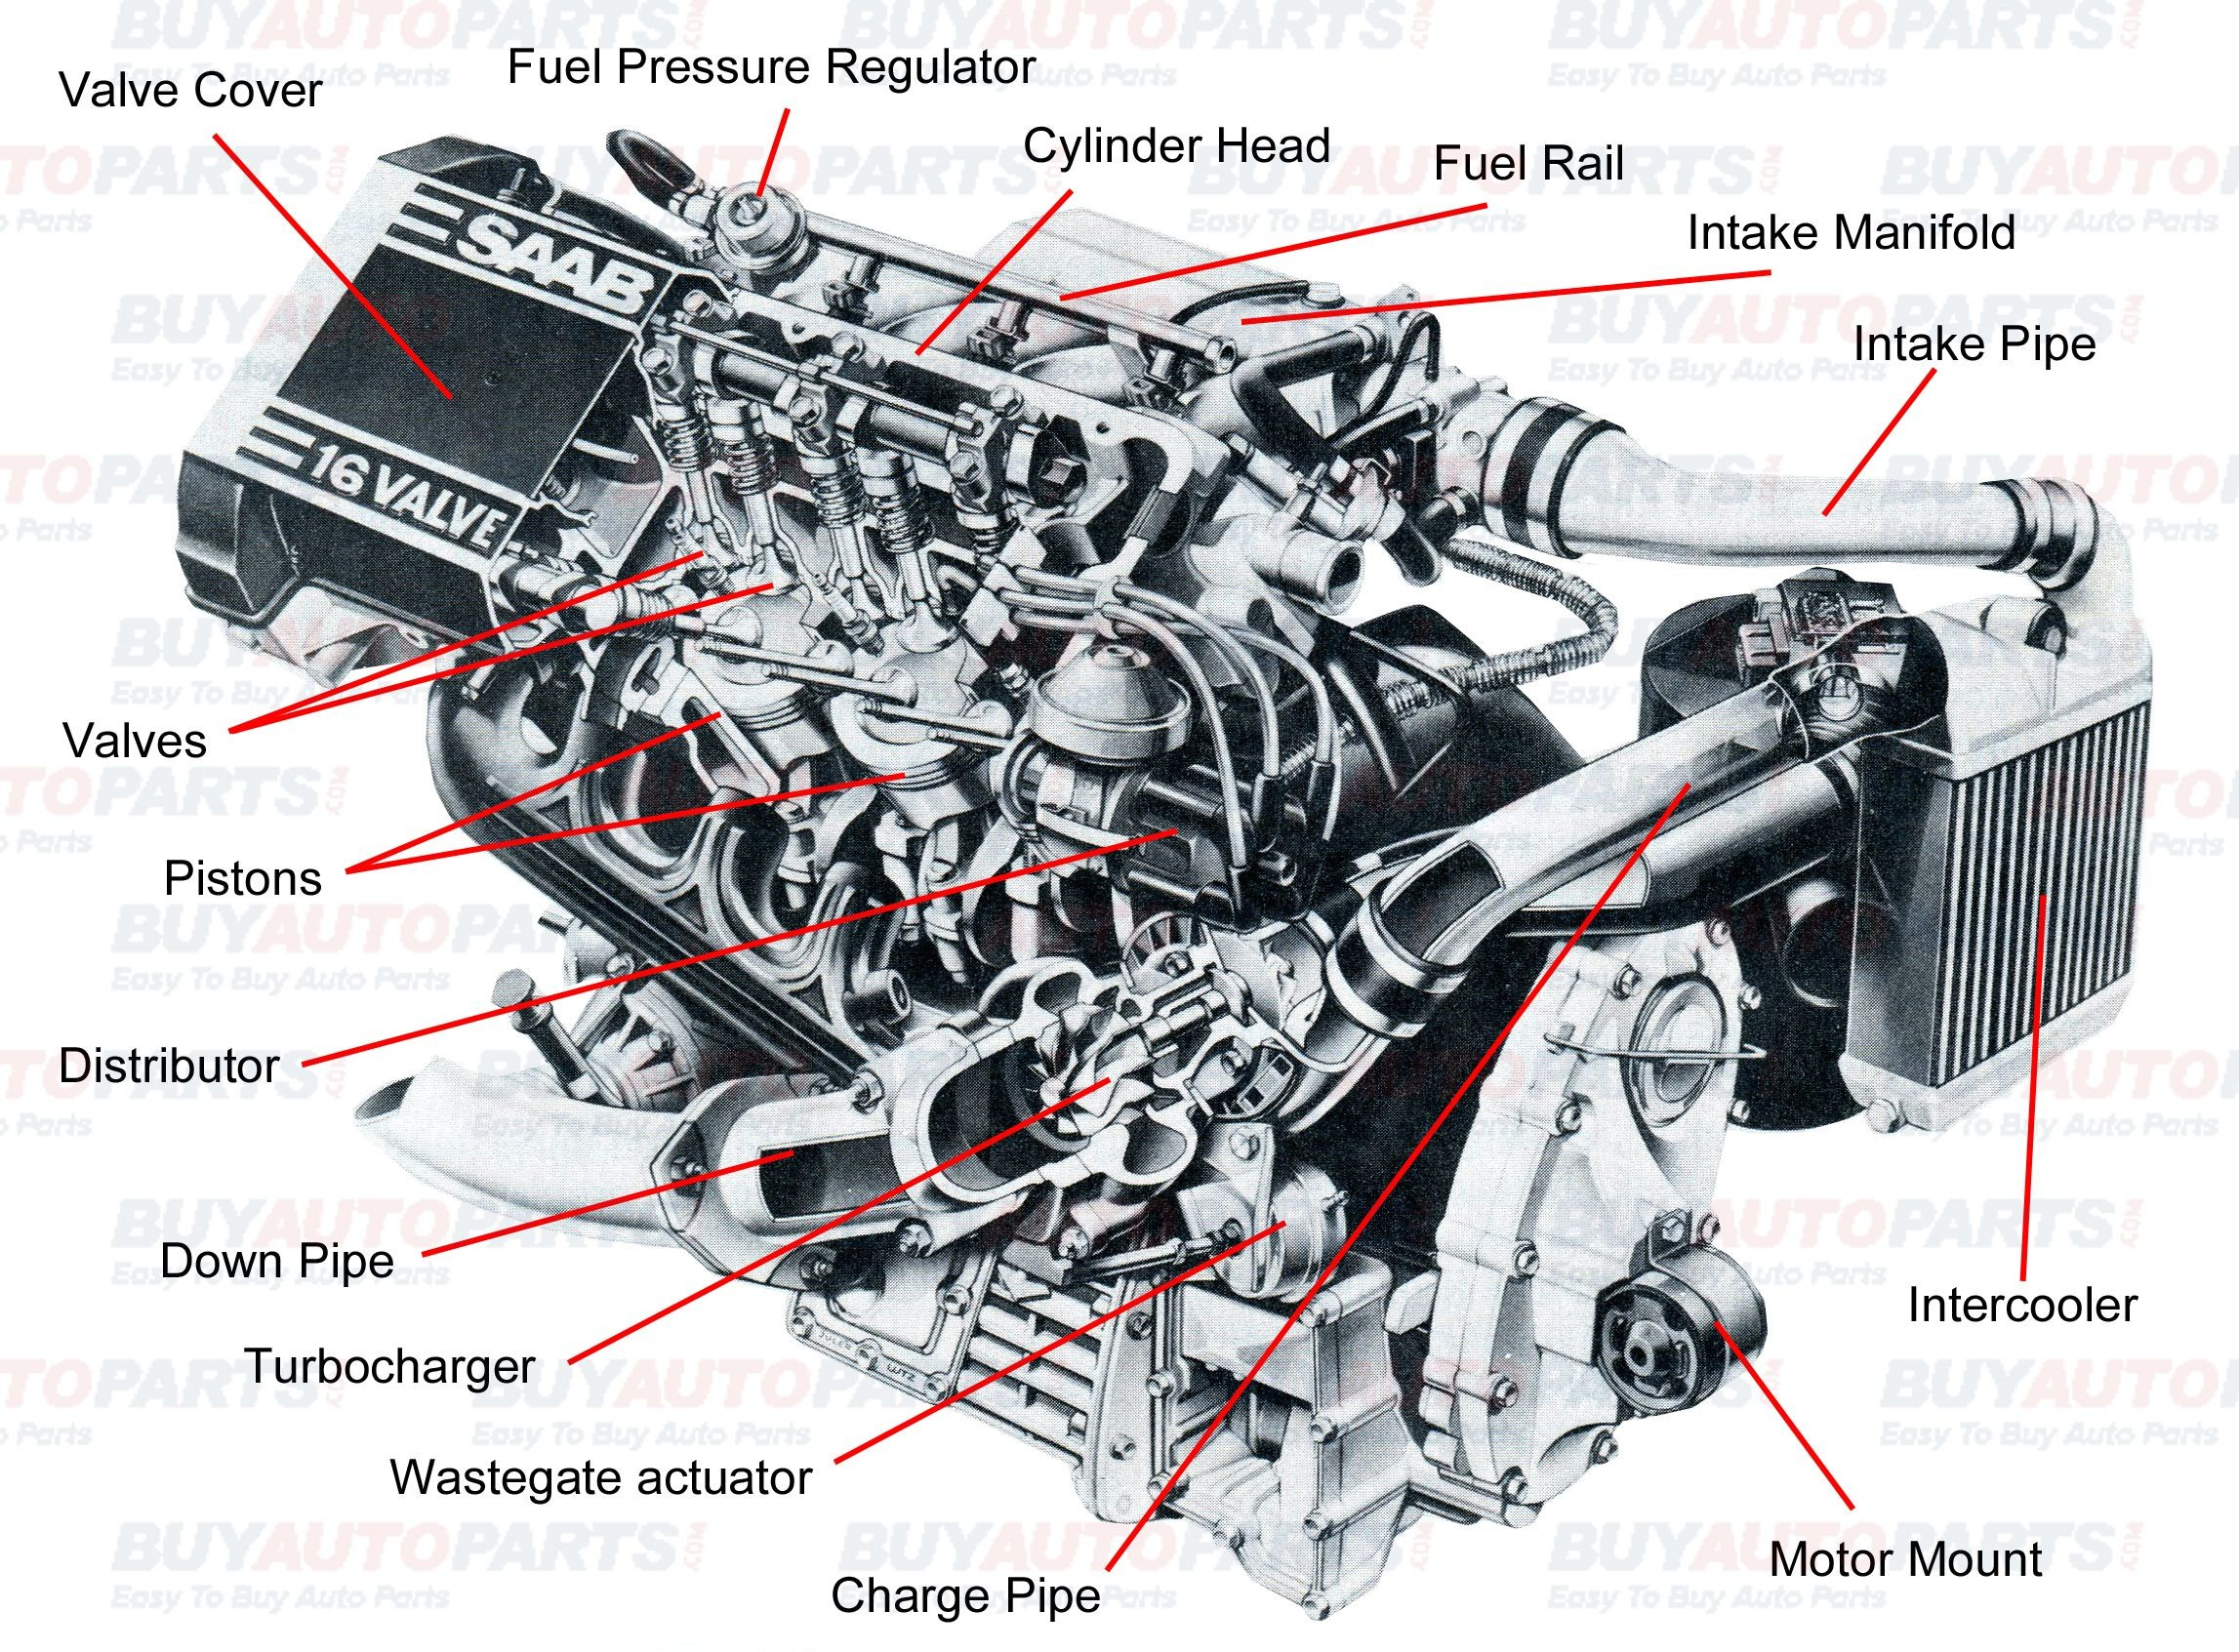 Automobile Parts Diagram Pin by Jimmiejanet Testellamwfz On What Does An Engine with Turbo Of Automobile Parts Diagram √ Awesome toyota Parts Barn